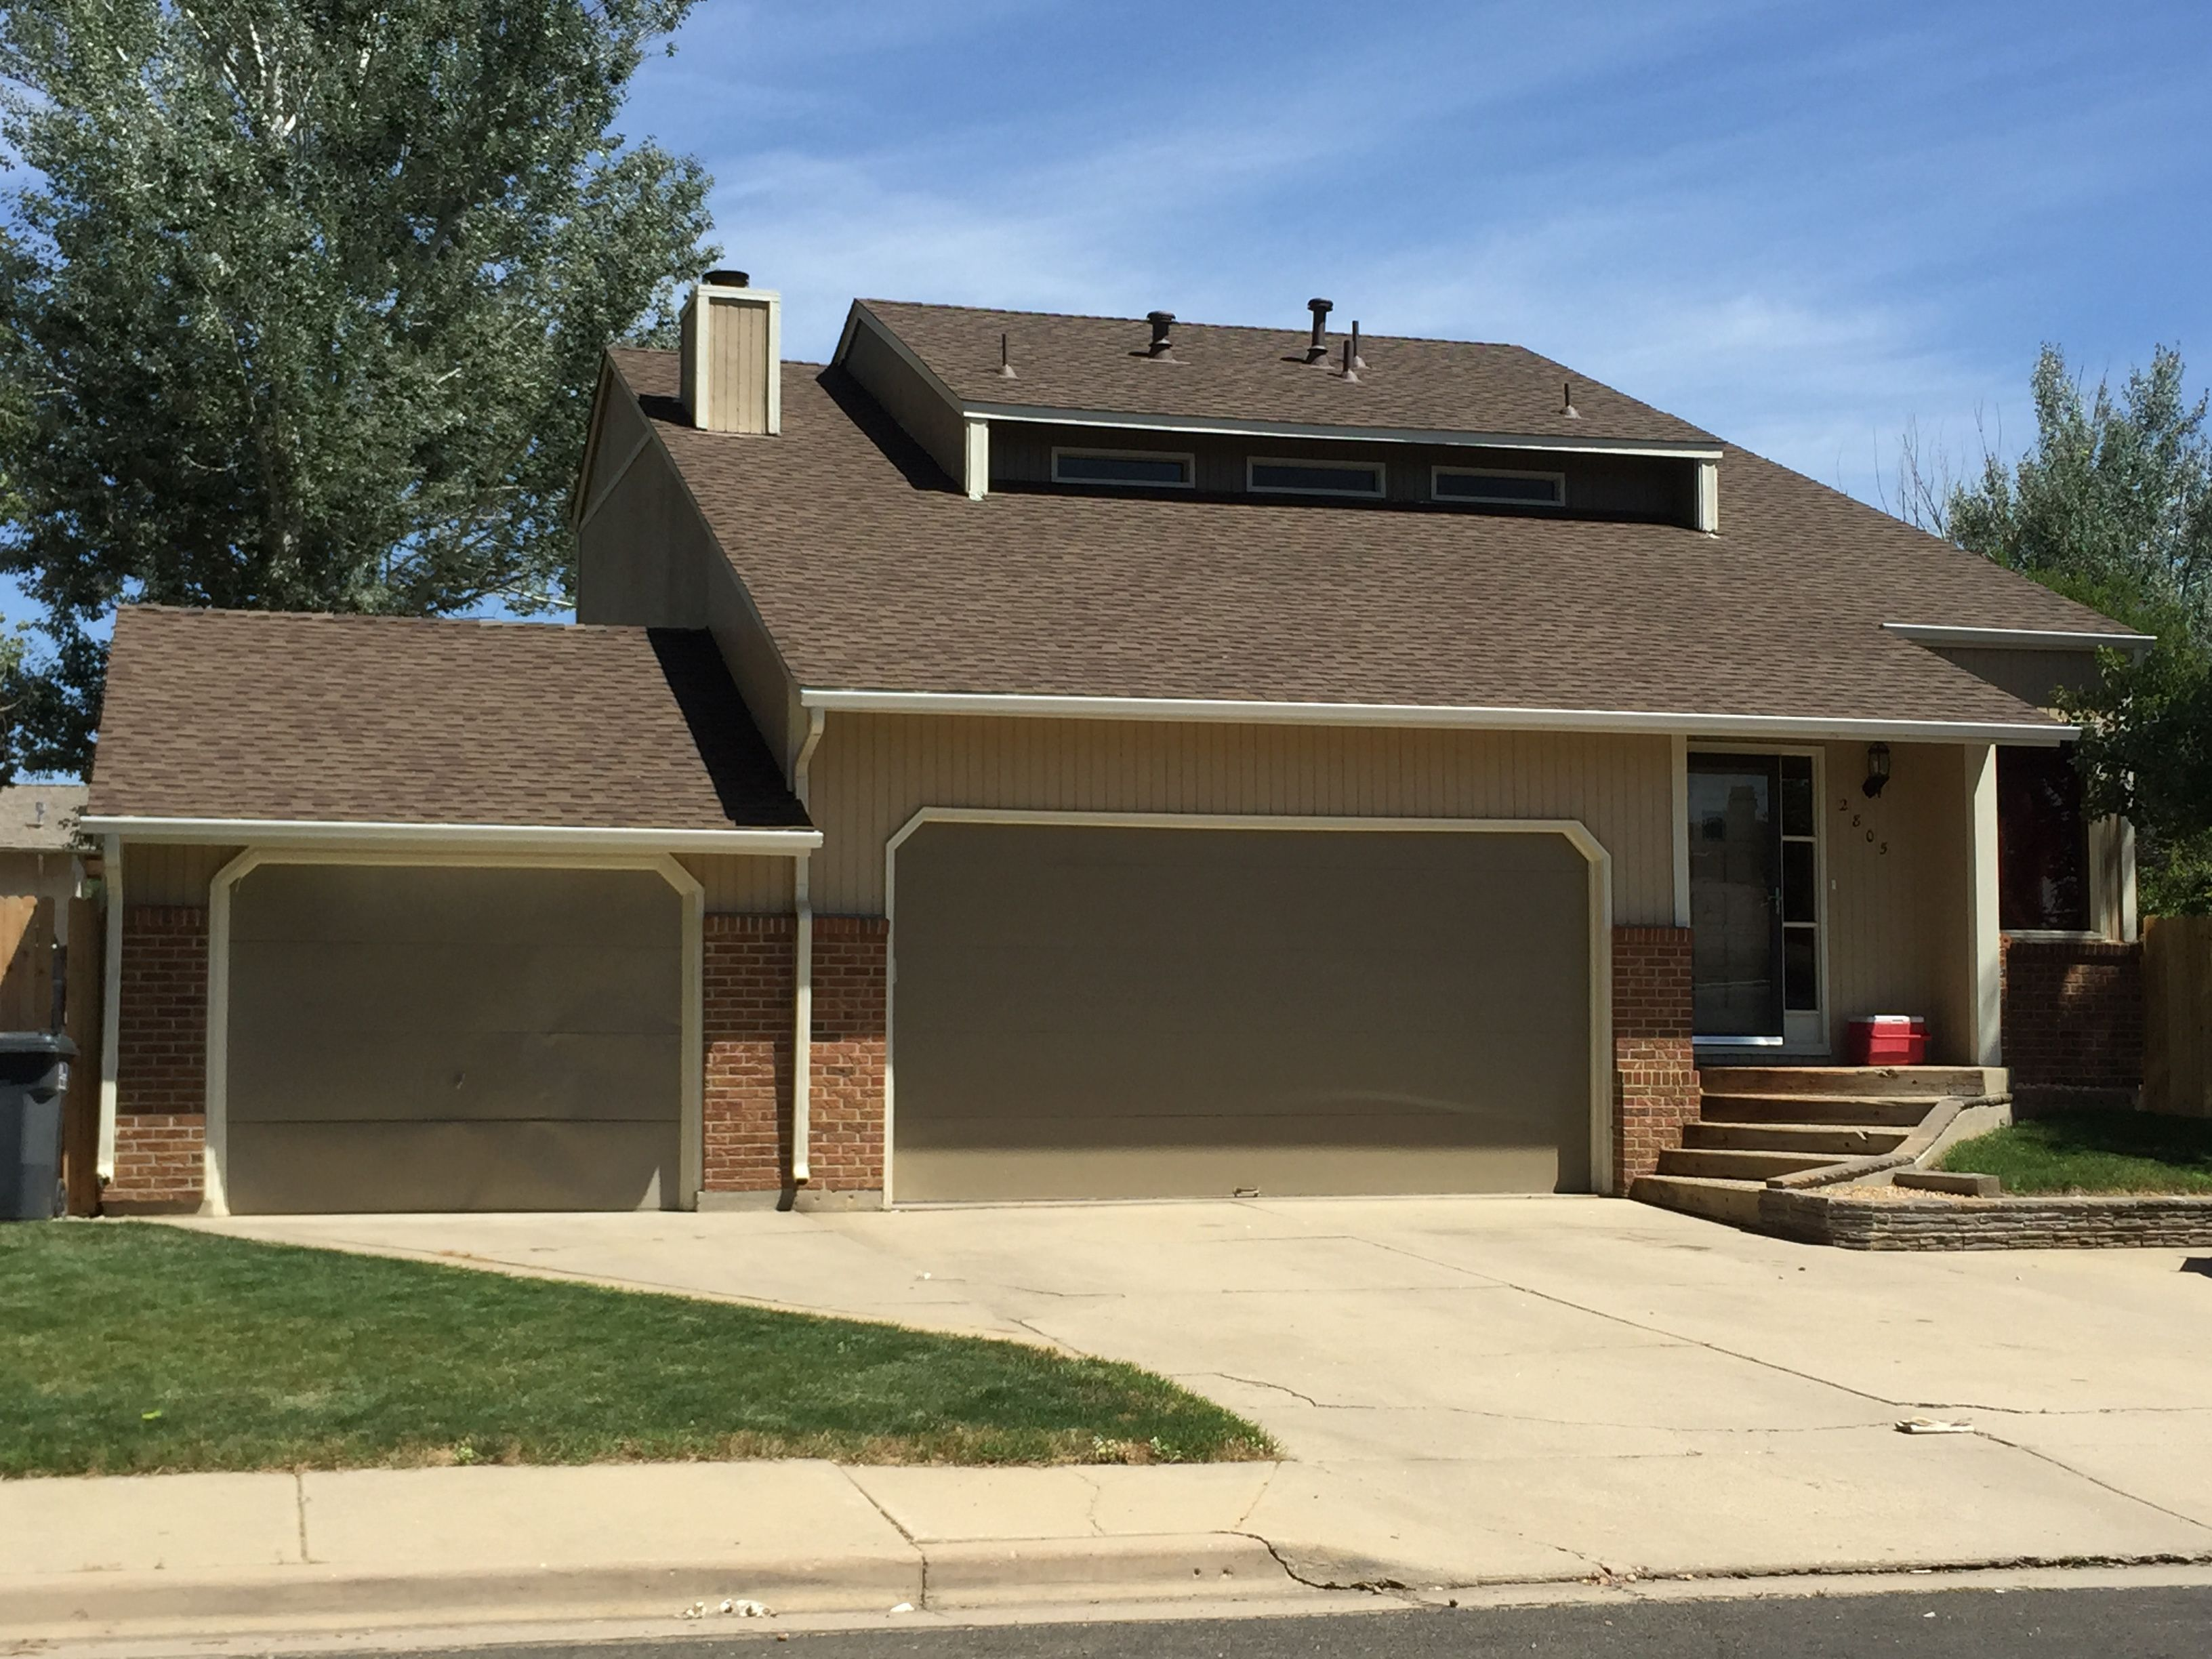 Best This Home In Longmont Looks So Nice With Barkwood Shingles 400 x 300